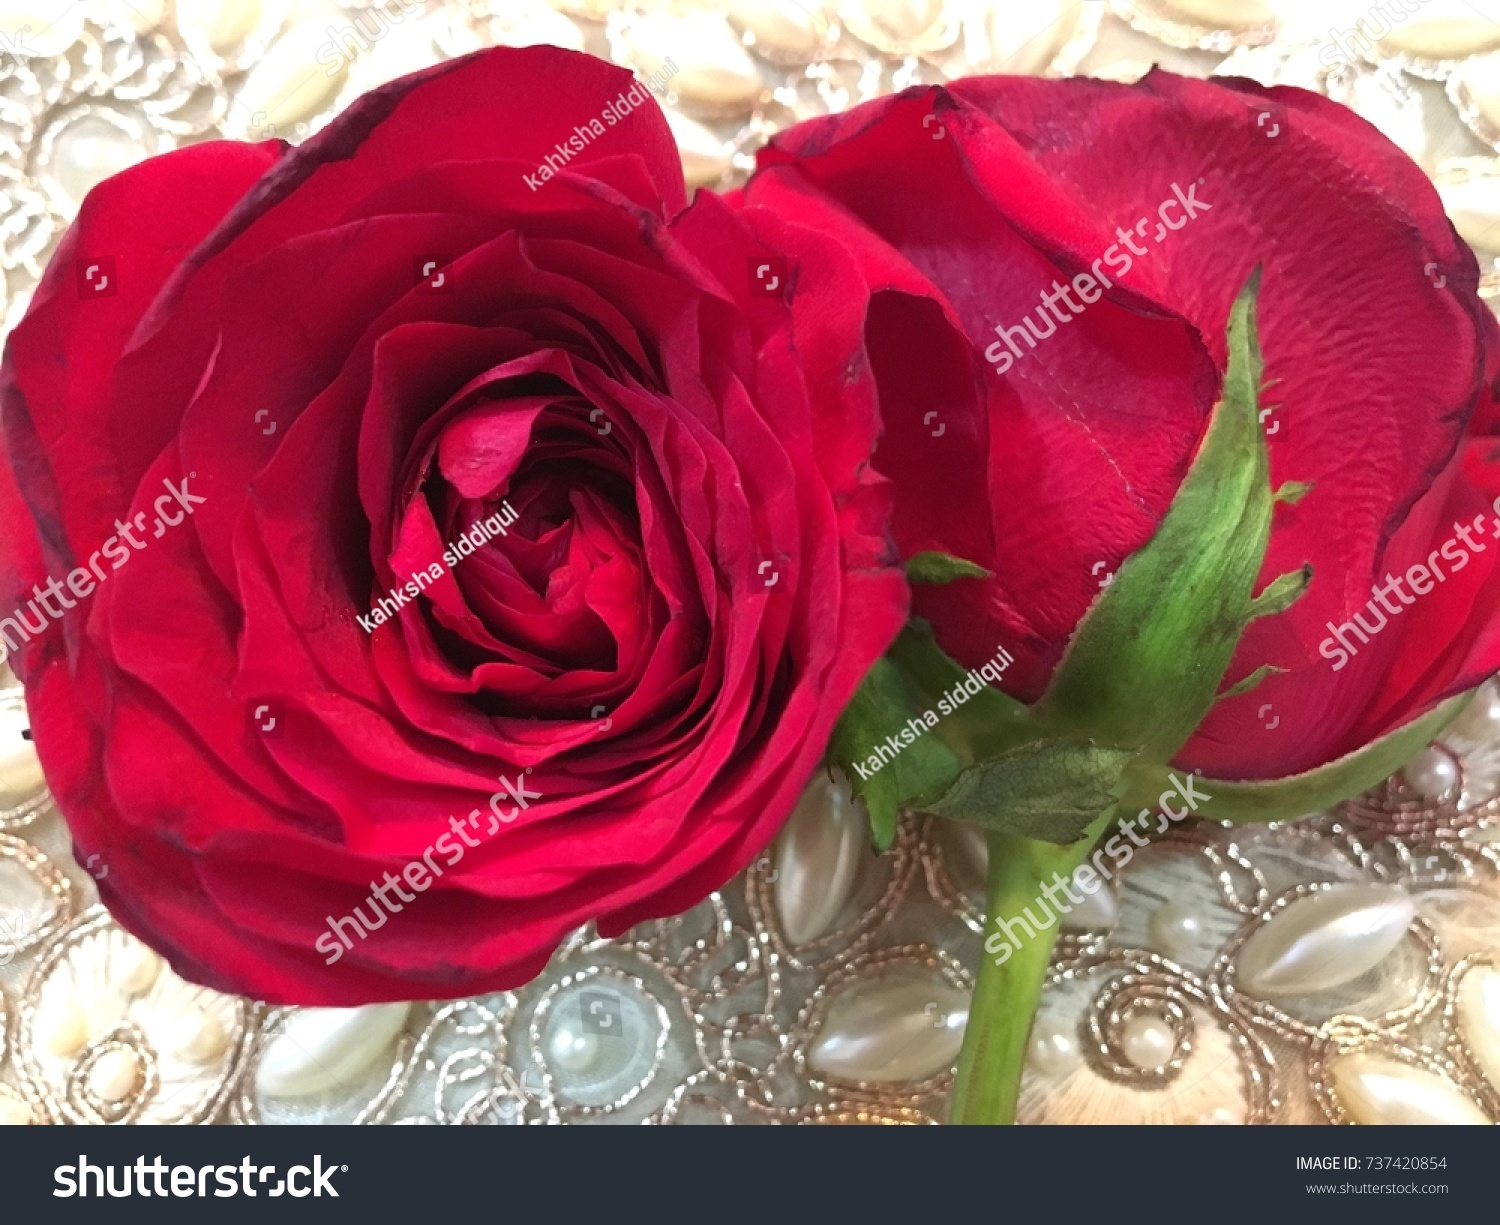 symbol love beautiful red rose wallpapers desktop stock photo (edit